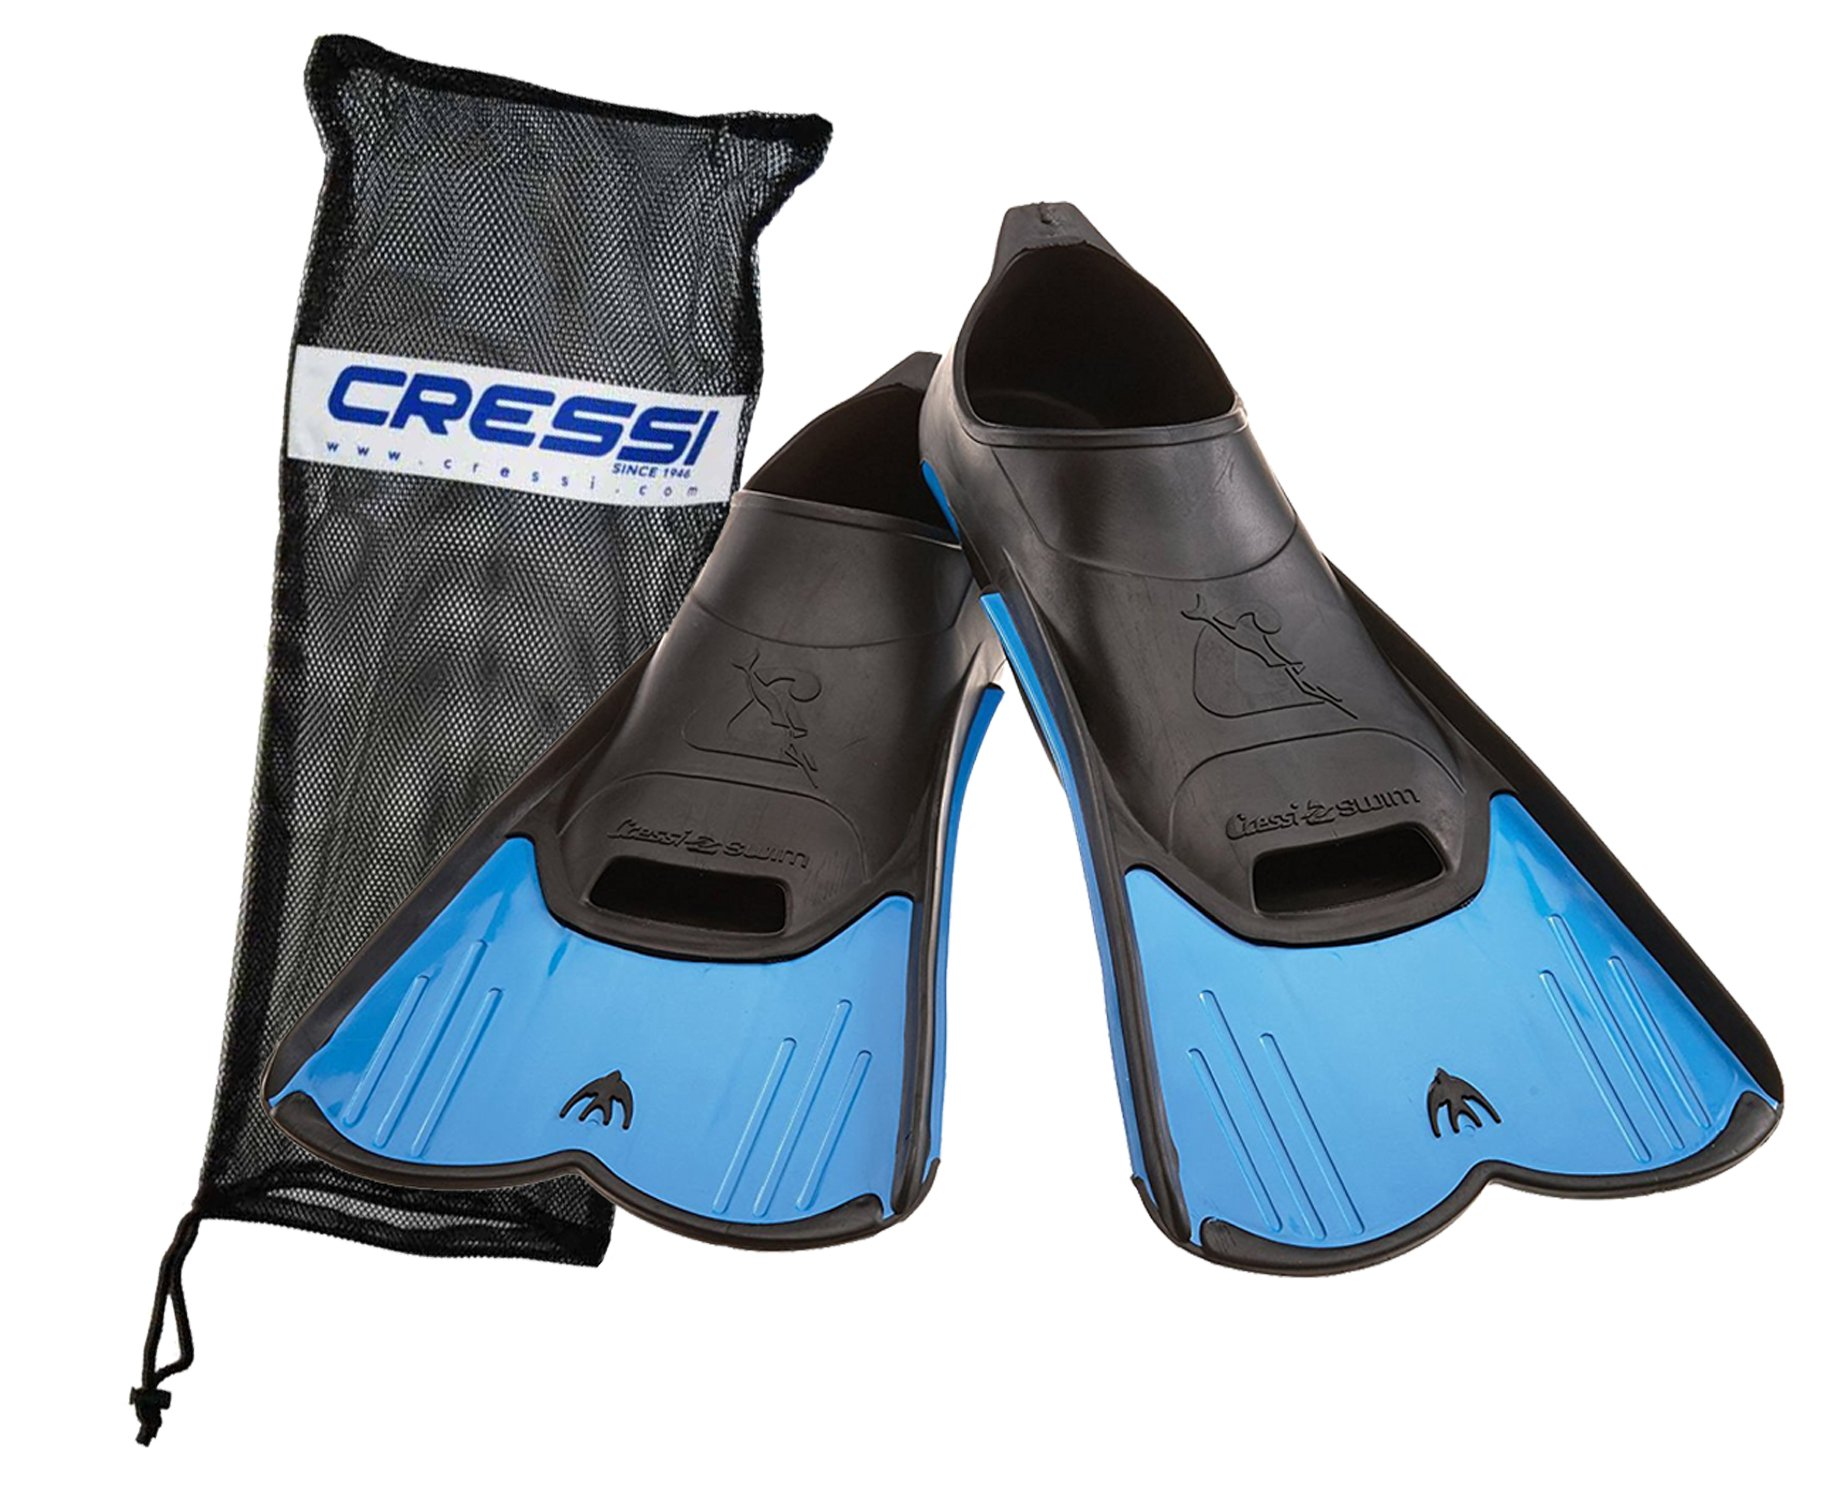 Cressi Light Fin Pool and Training Short Blade Fin with Bag, 5.5/6.5 by Cressi (Image #1)